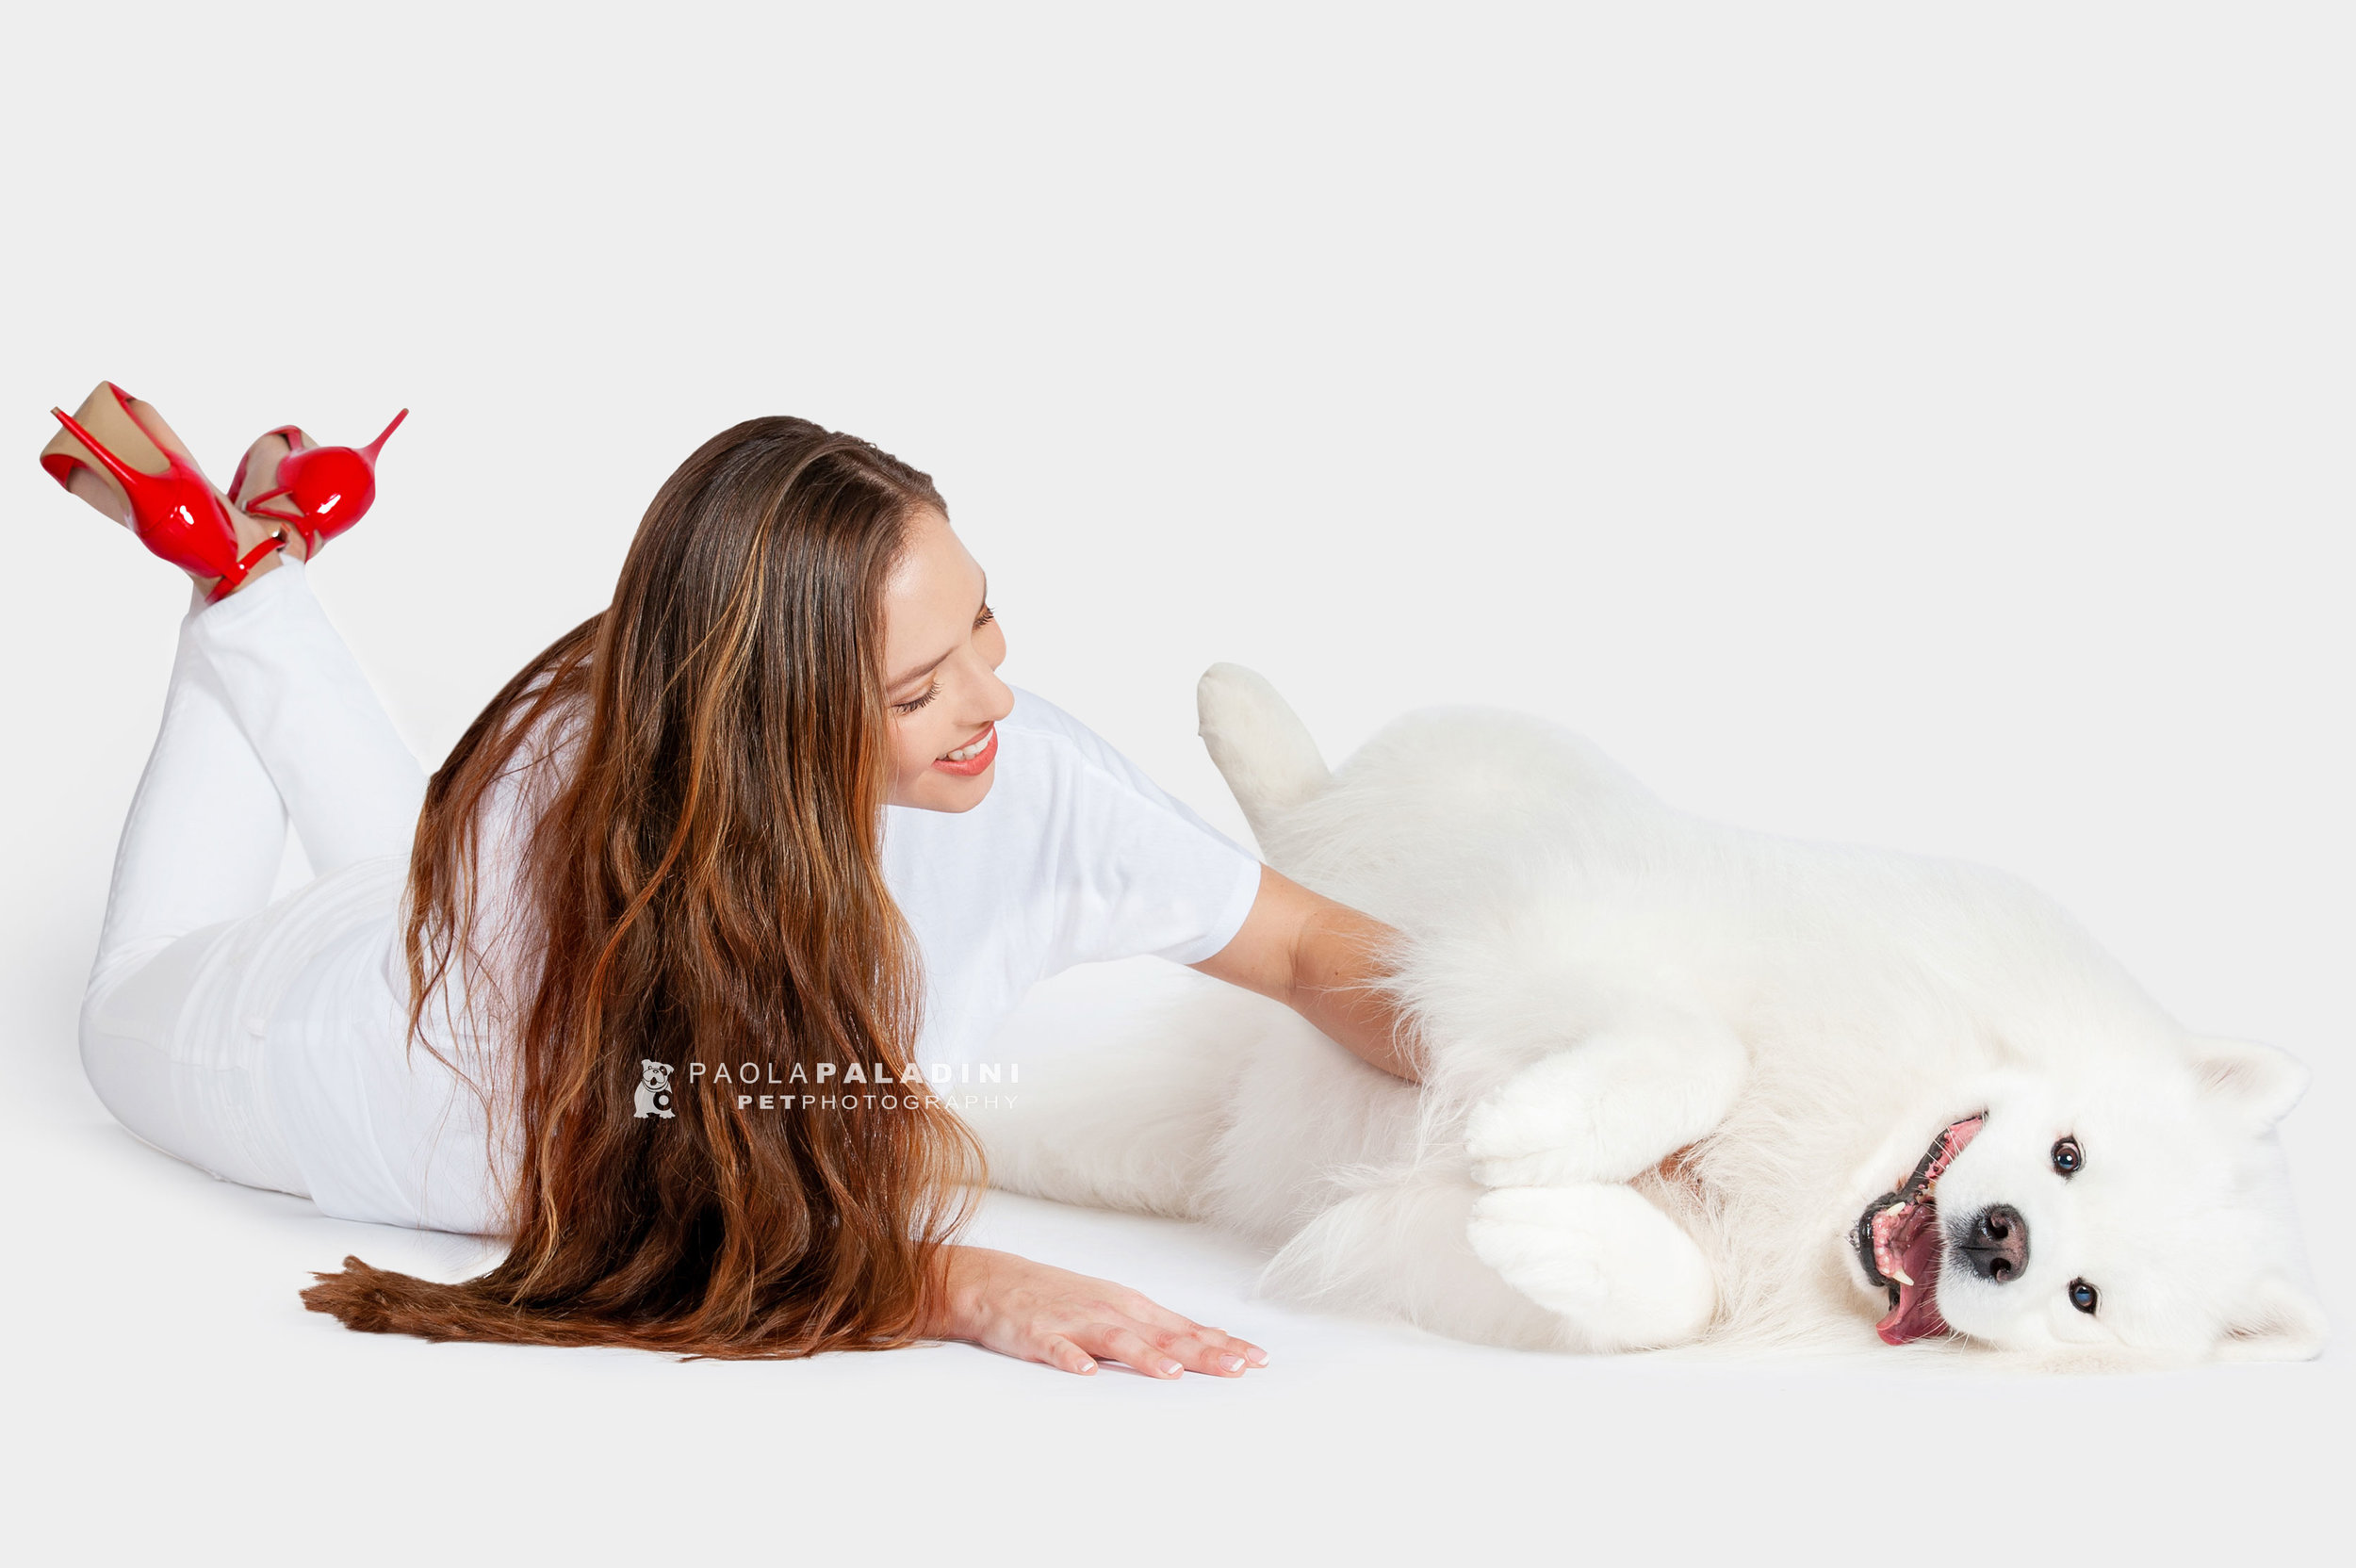 Paola-Paladini-White-on-White-Hounds-and-Heels-Samoyed-White-Dog